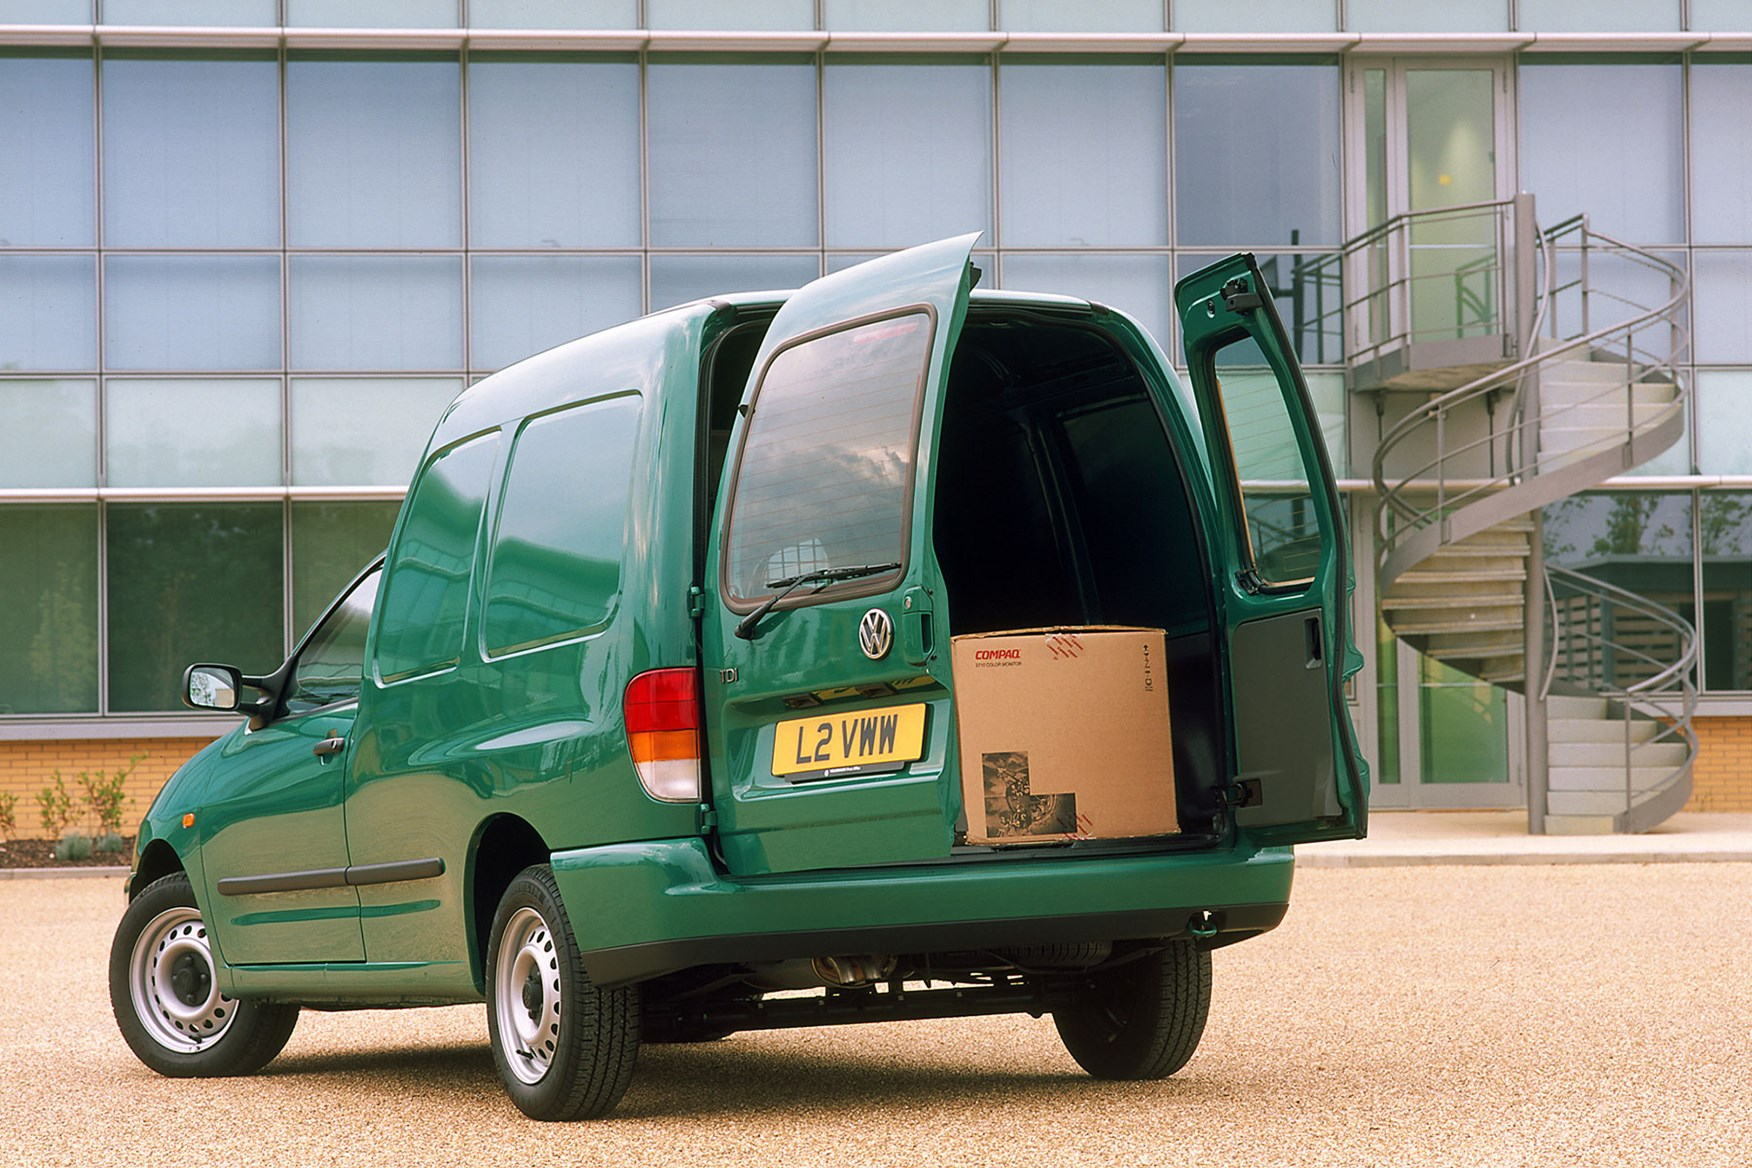 VW Caddy (1996-2003) load area